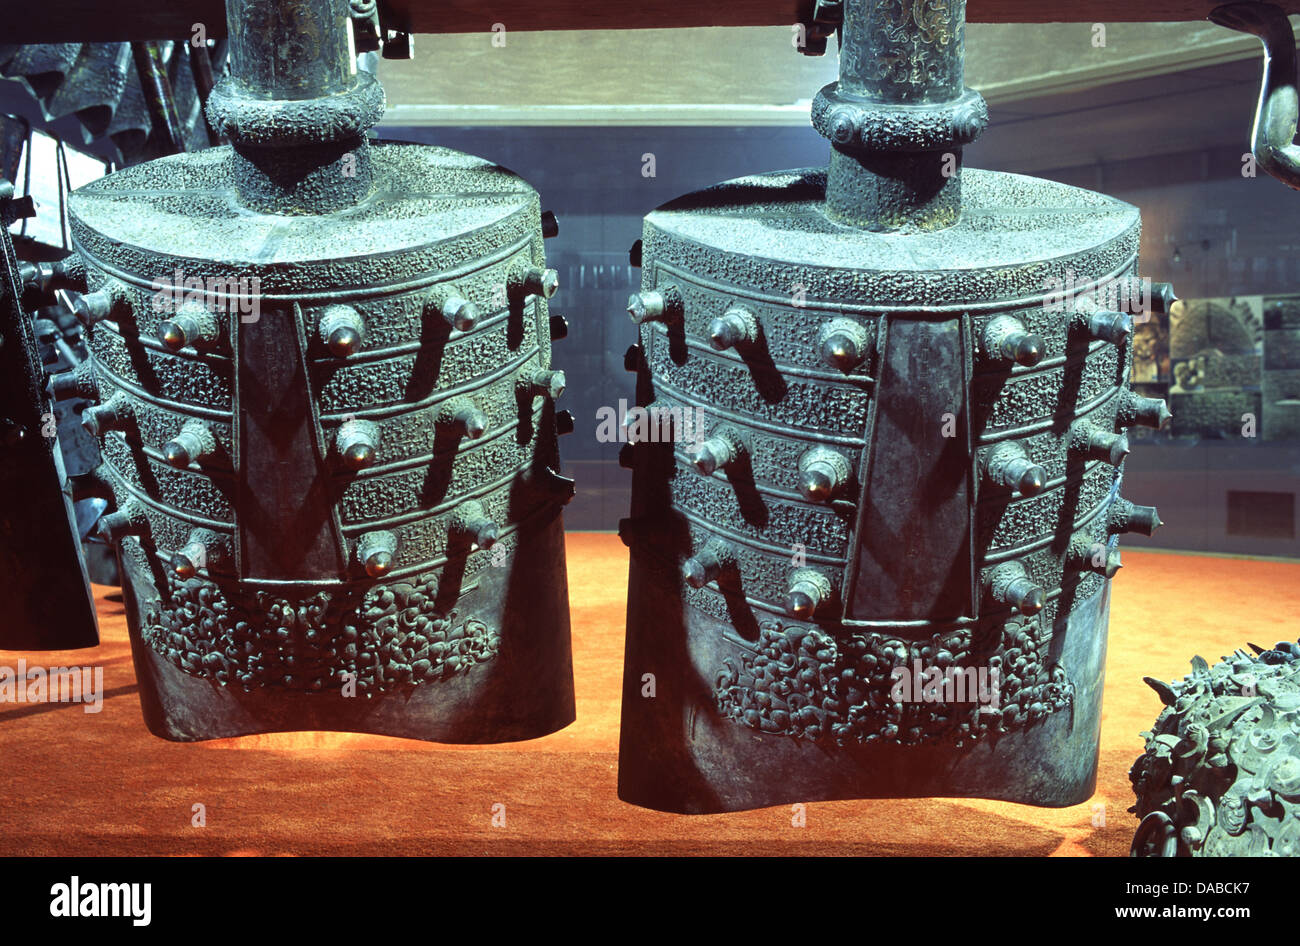 Bianzhong set of ancient bronze bells important musical instrument in China's ritual and court music going back - Stock Image